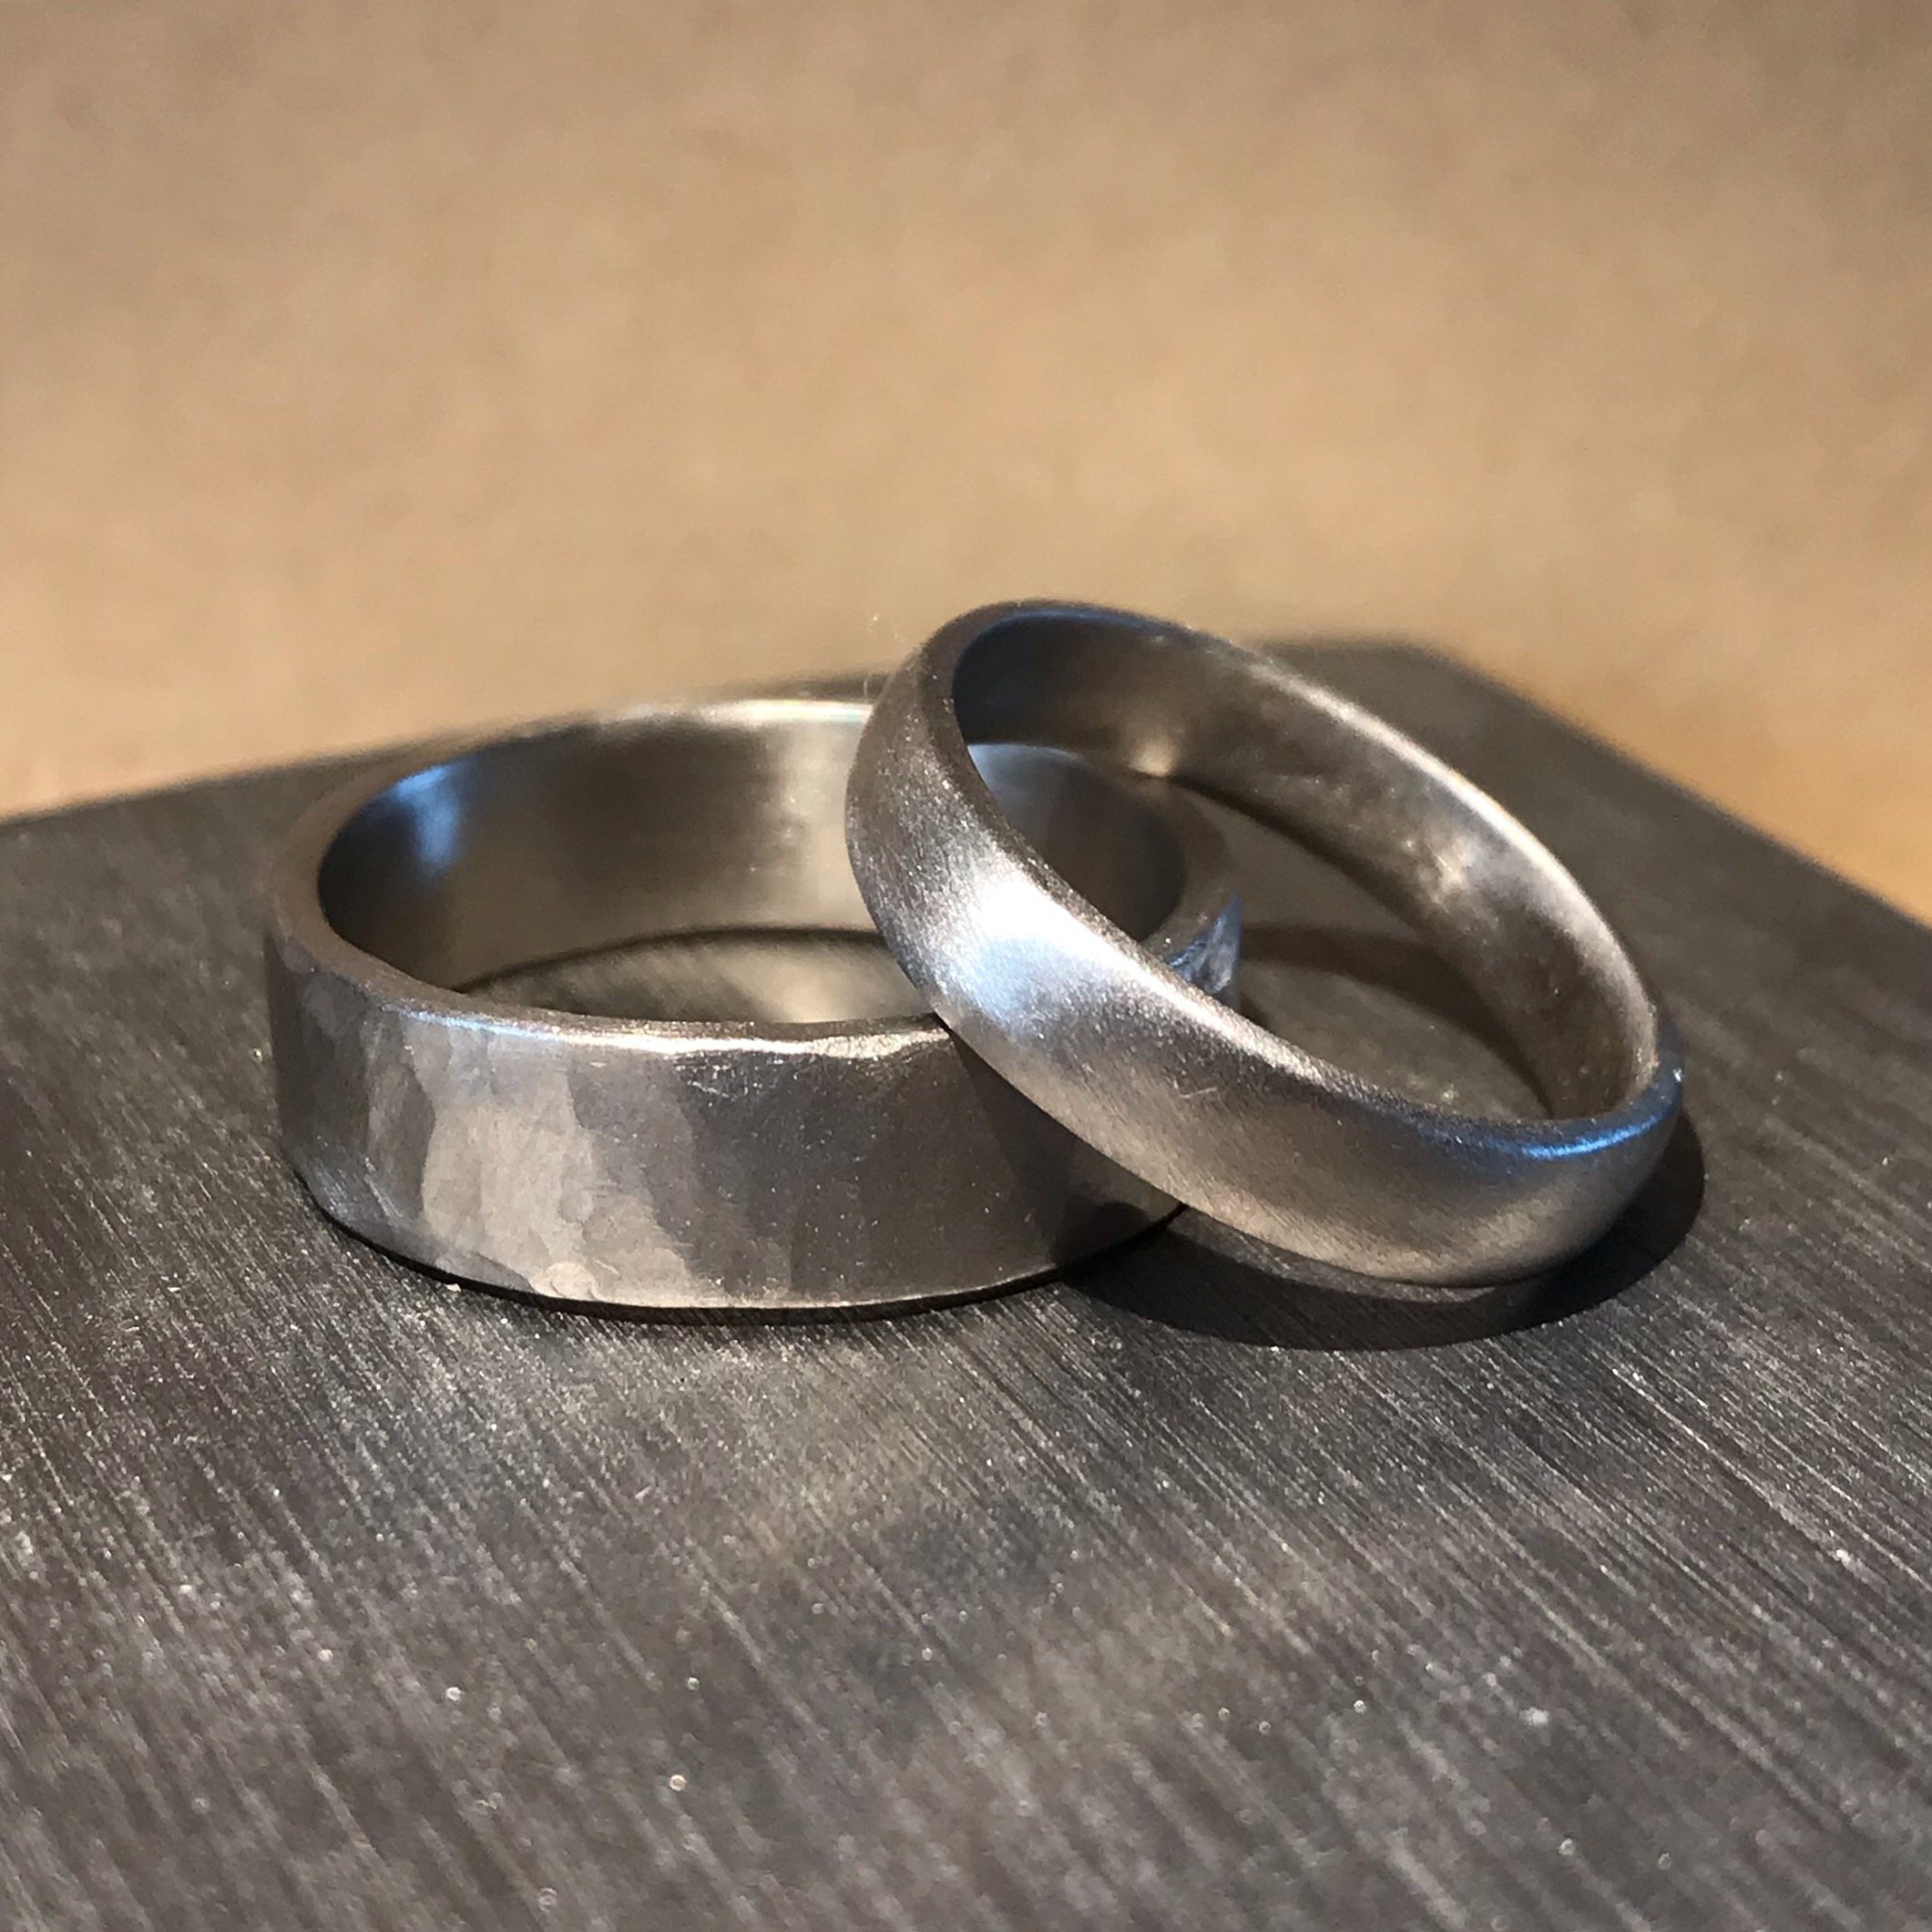 Amy & Tom in 2019 … made in 18ct white gold